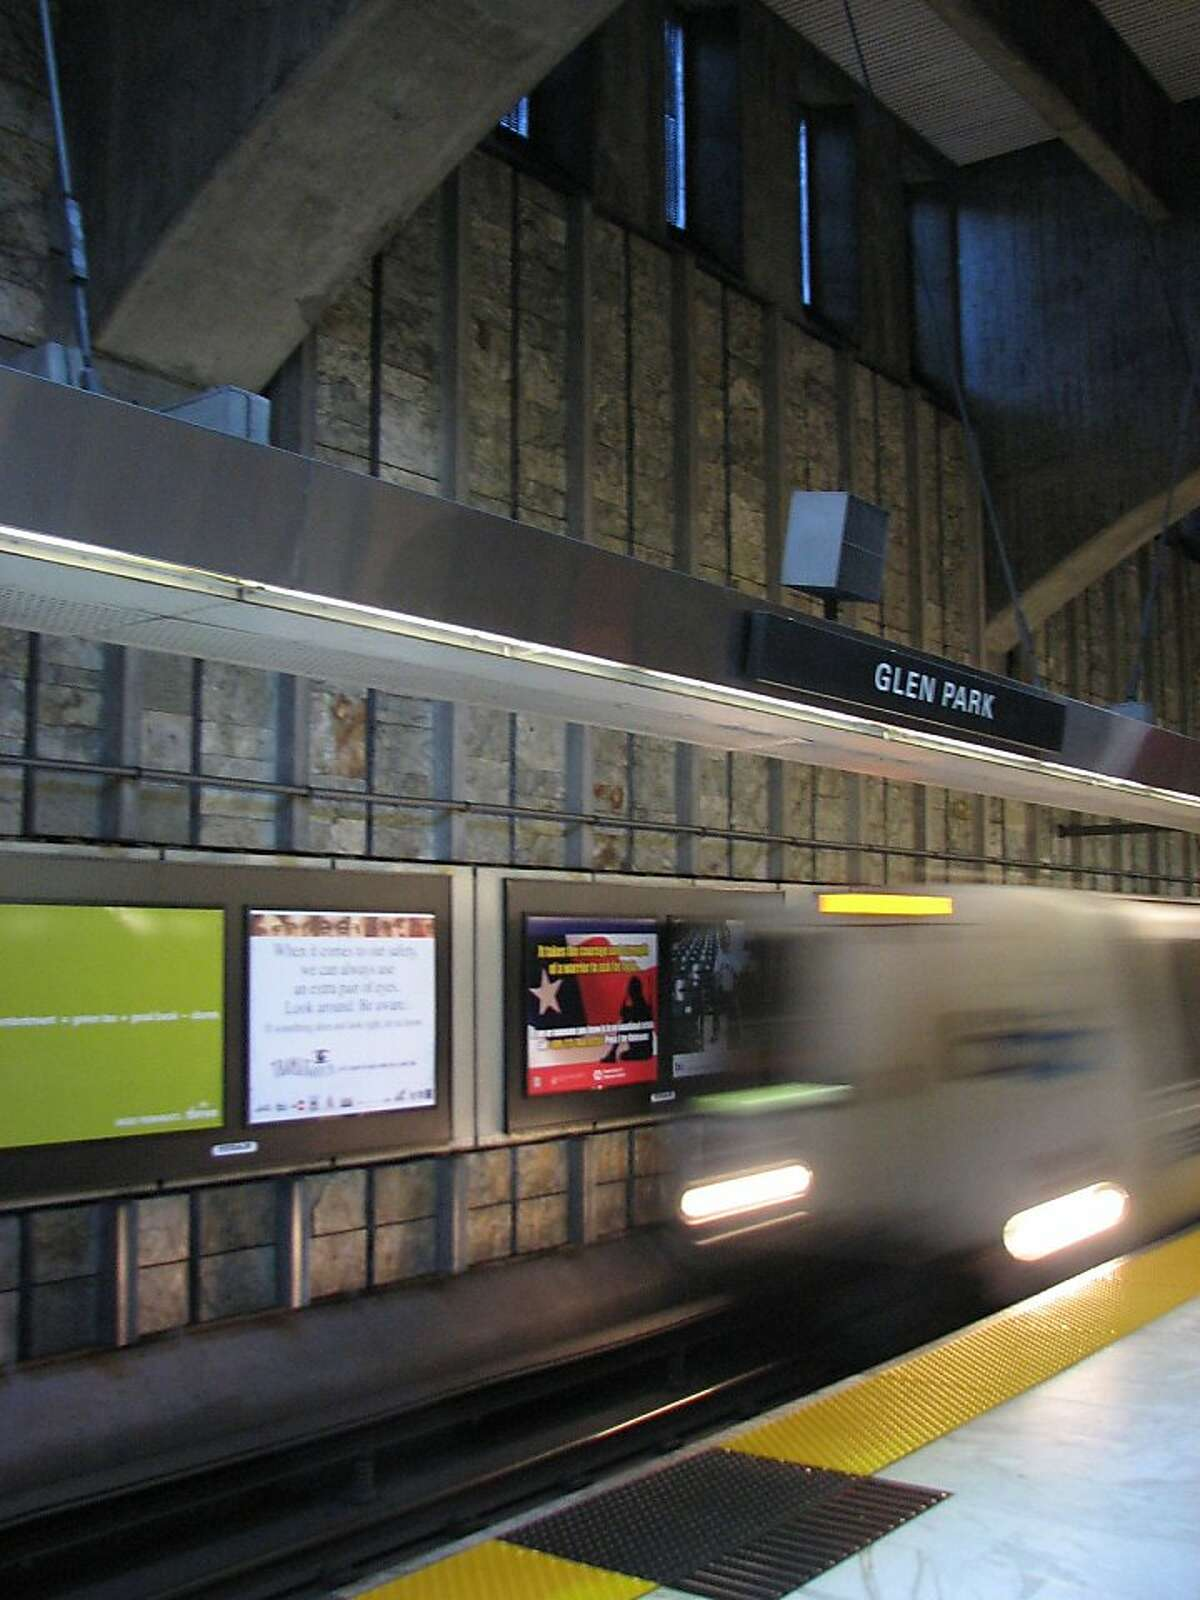 What the Glen Park BART station lacks in way of fancy architectural touches, it makes up for with structural drama and a shadowy aura Ran on: 10-04-2009 Photo caption Dummy text goes here. Dummy text goes here. Dummy text goes here. Dummy text goes here. Dummy text goes here. Dummy text goes here. Dummy text goes here. Dummy text goes here.###Photo: 0###Live Caption:What the Glen Park BART station lacks in way of fancy architectural touches, it makes up for with structural drama and a shadowy aura###Caption History:What the Glen Park BART station lacks in way of fancy architectural touches, it makes up for with structural drama and a shadowy aura###Notes:###Special Instructions: Ran on: 10-04-2009 Photo caption Dummy text goes here. Dummy text goes here. Dummy text goes here. Dummy text goes here. Dummy text goes here. Dummy text goes here. Dummy text goes here. Dummy text goes here.###Photo: 0###Live Caption:What the Glen Park BART station lacks in way of fancy architectural touches, it makes up for with structural drama and a shadowy aura###Caption History:What the Glen Park BART station lacks in way of fancy architectural touches, it makes up for with structural drama and a shadowy aura###Notes:###Special Instructions: